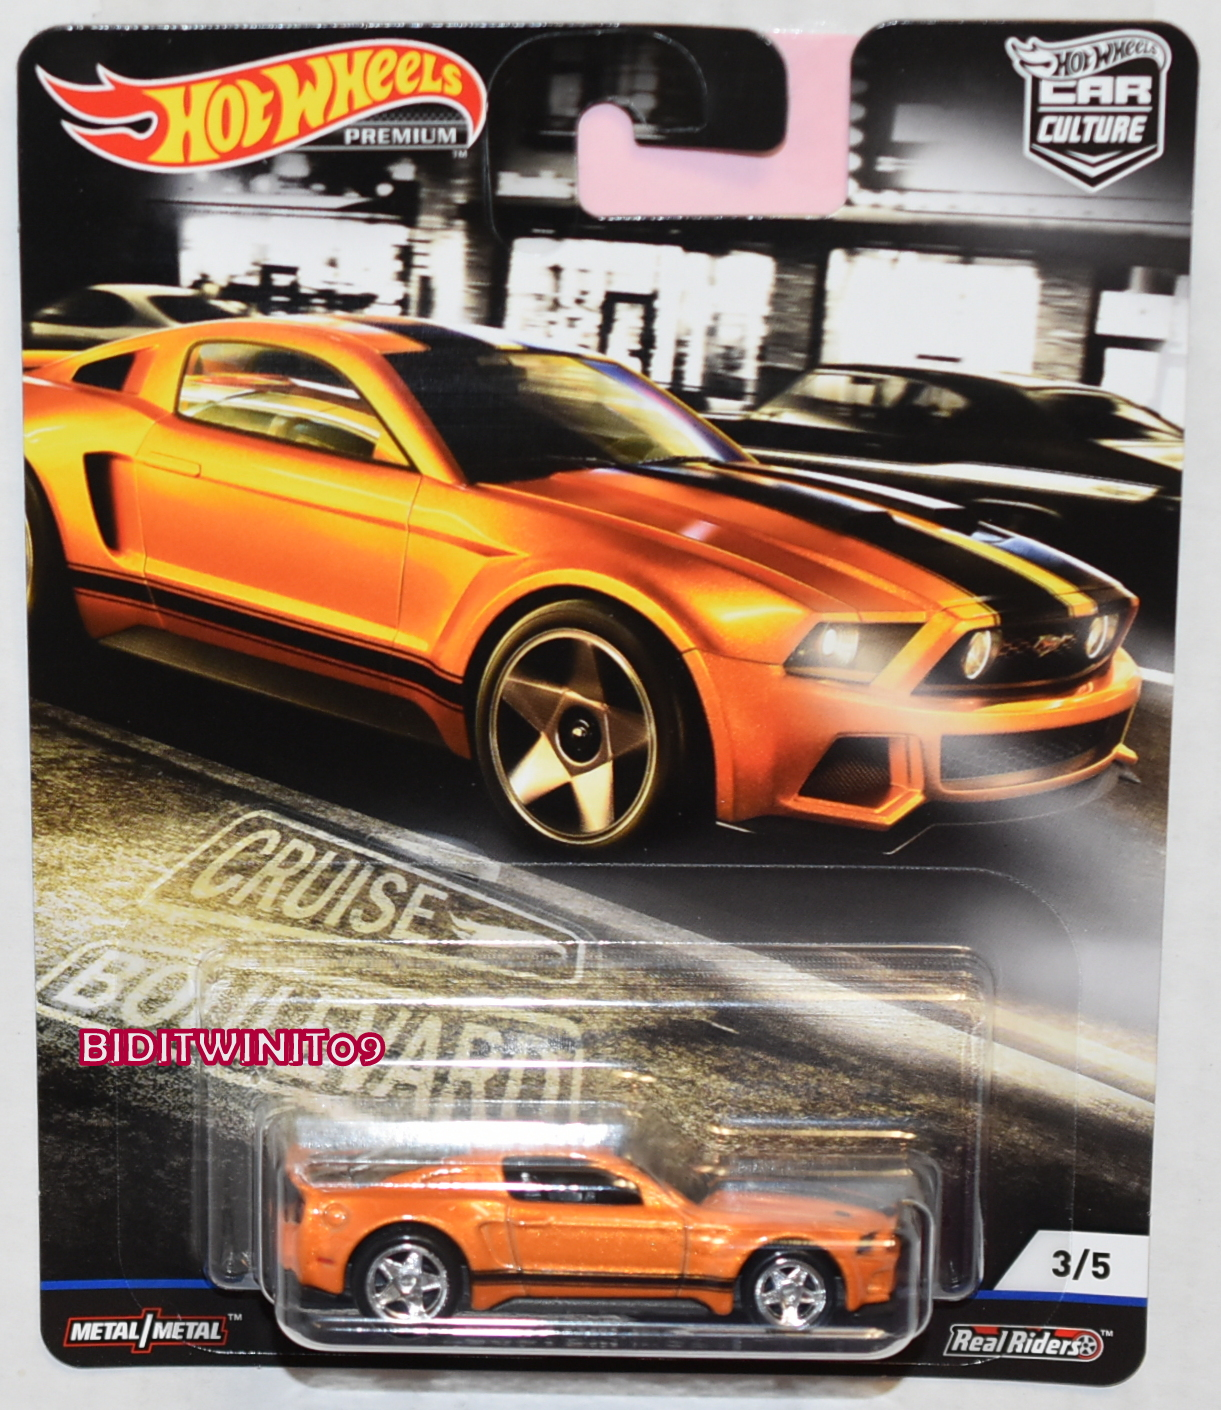 HOT WHEELS 2019 CAR CULTURE BOULEVARD CASE M 2014 CUSTOM MUSTANG